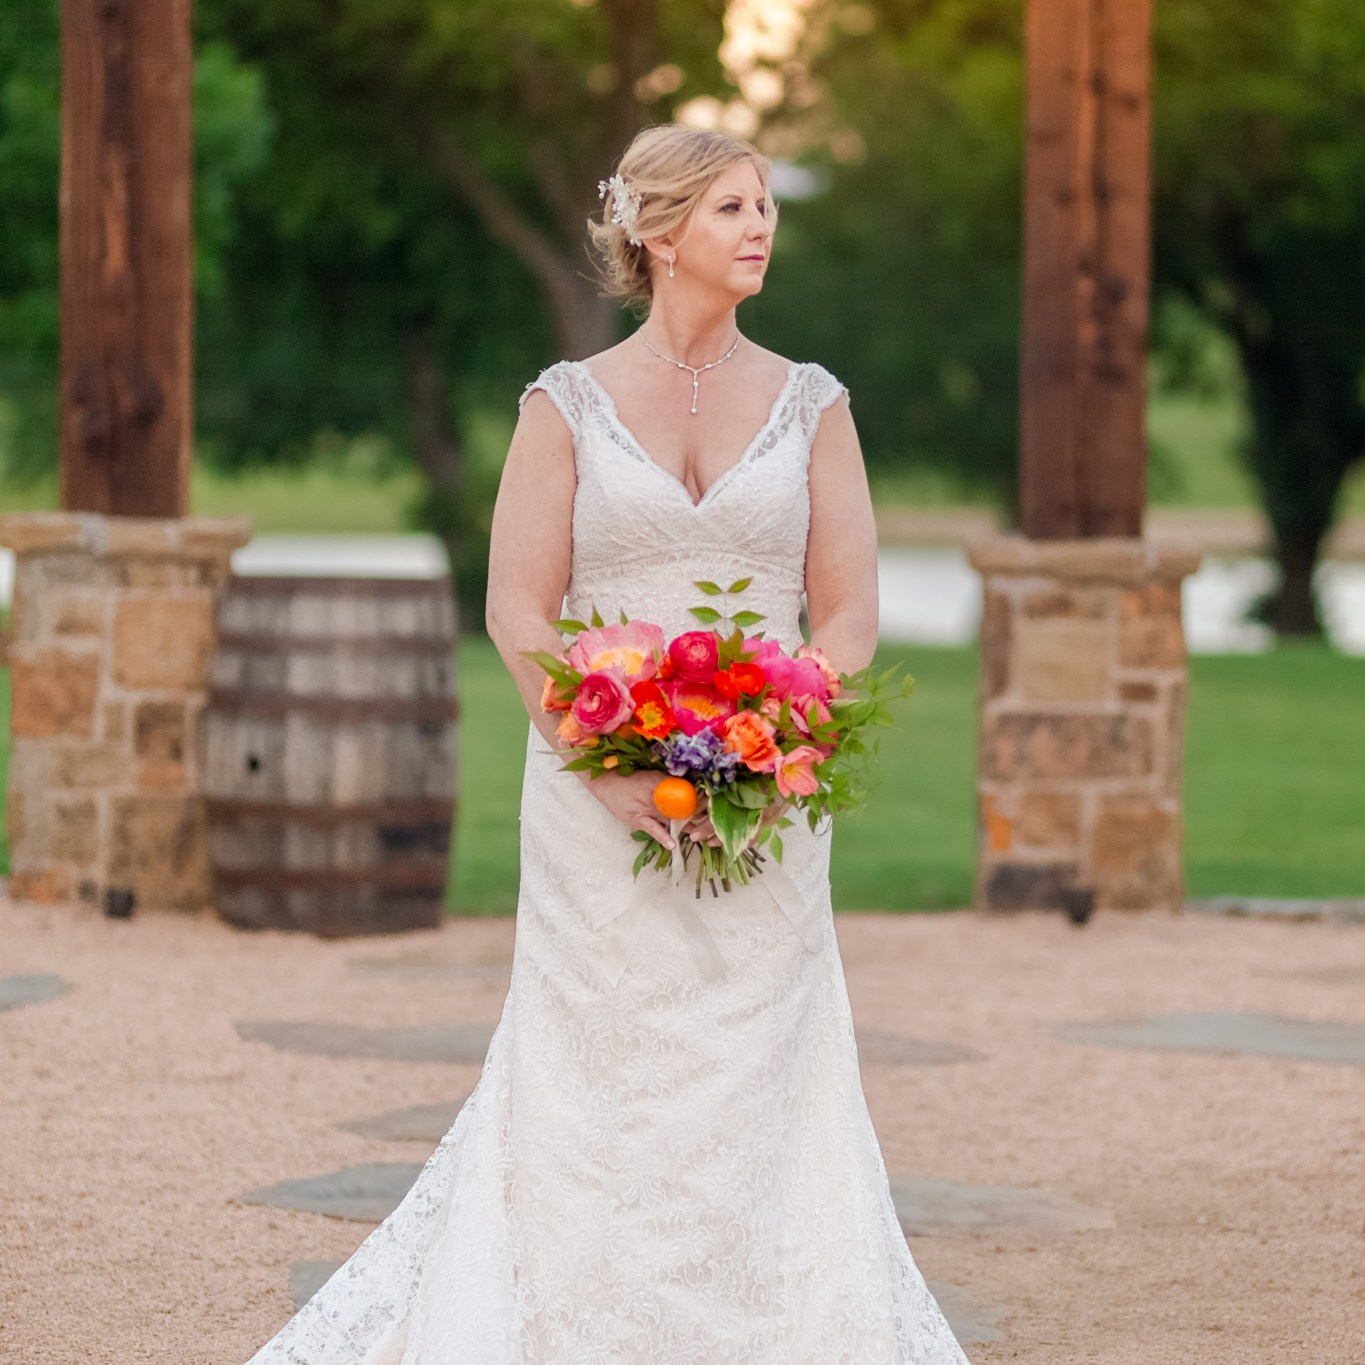 Texas Ranch Wedding, Bridal Portraits, Texas Bride, Brides of North Texas, Bridal Portaits on a ranch, wedding dress, flower mound wedding photographer